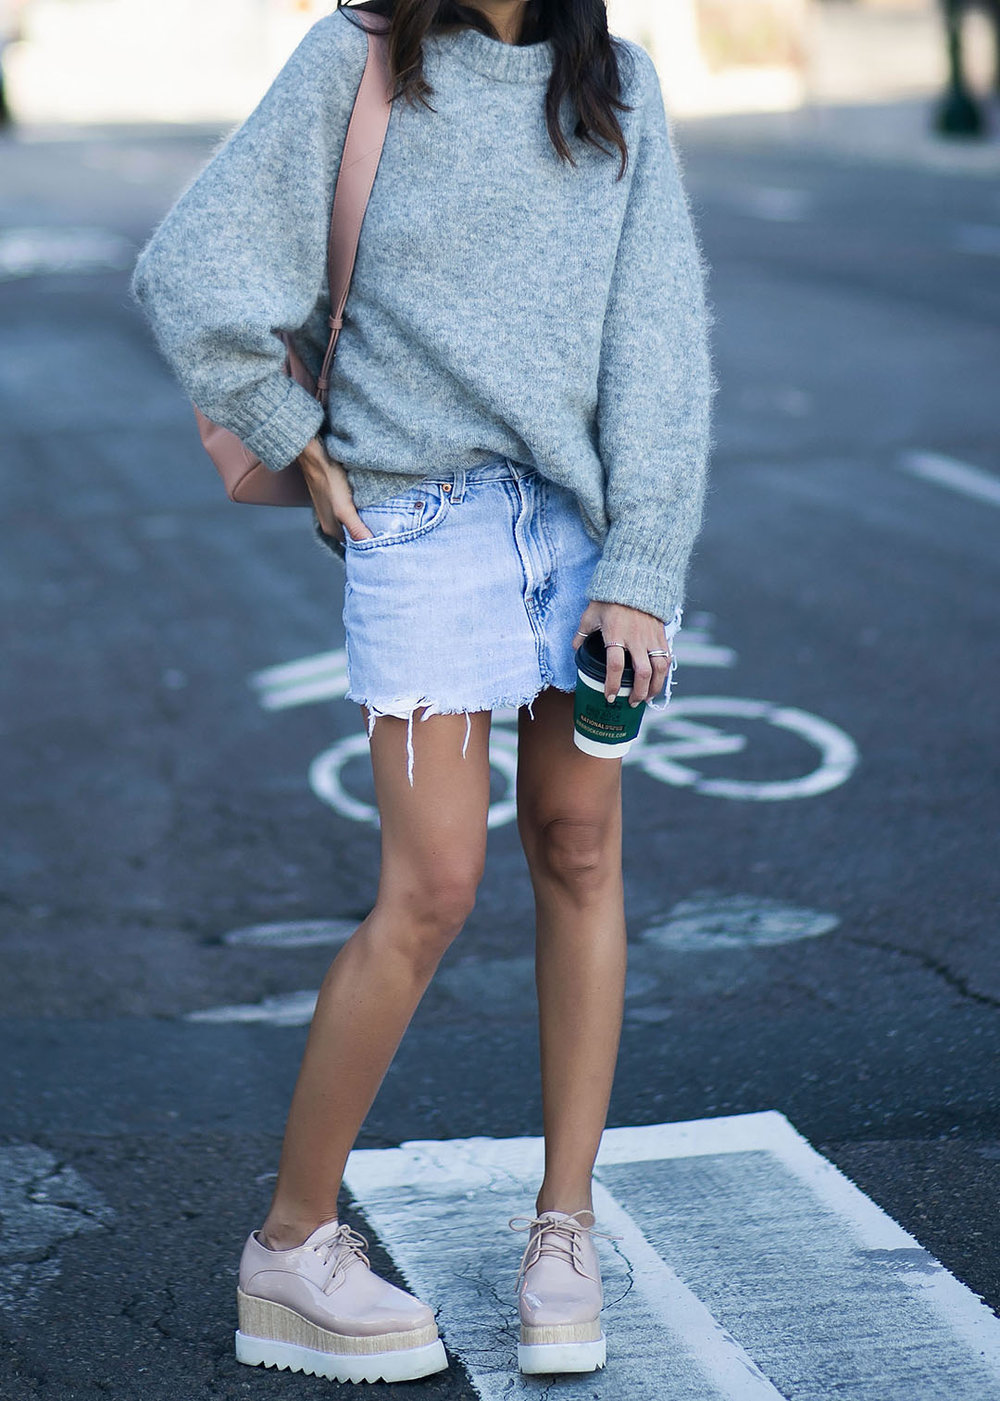 Mohair-Sweater-with-Levis-Skirt.jpg